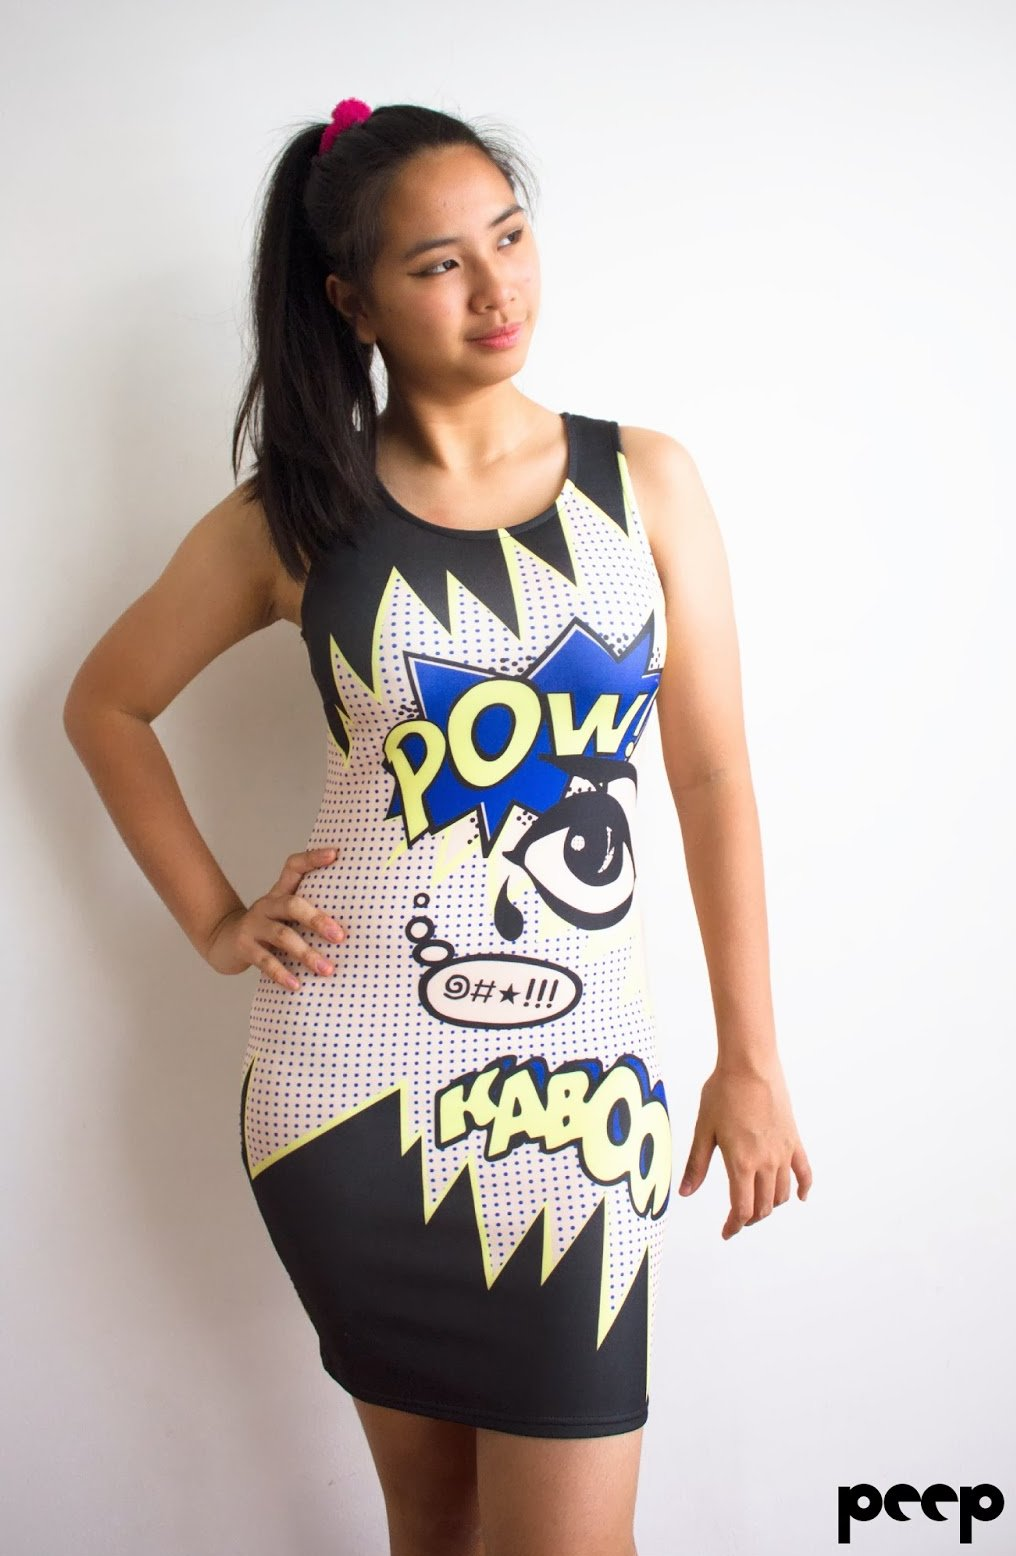 615a1aa3d Creative Chic Ways to Wear the Pop-Art Dresses Trend - Lava360